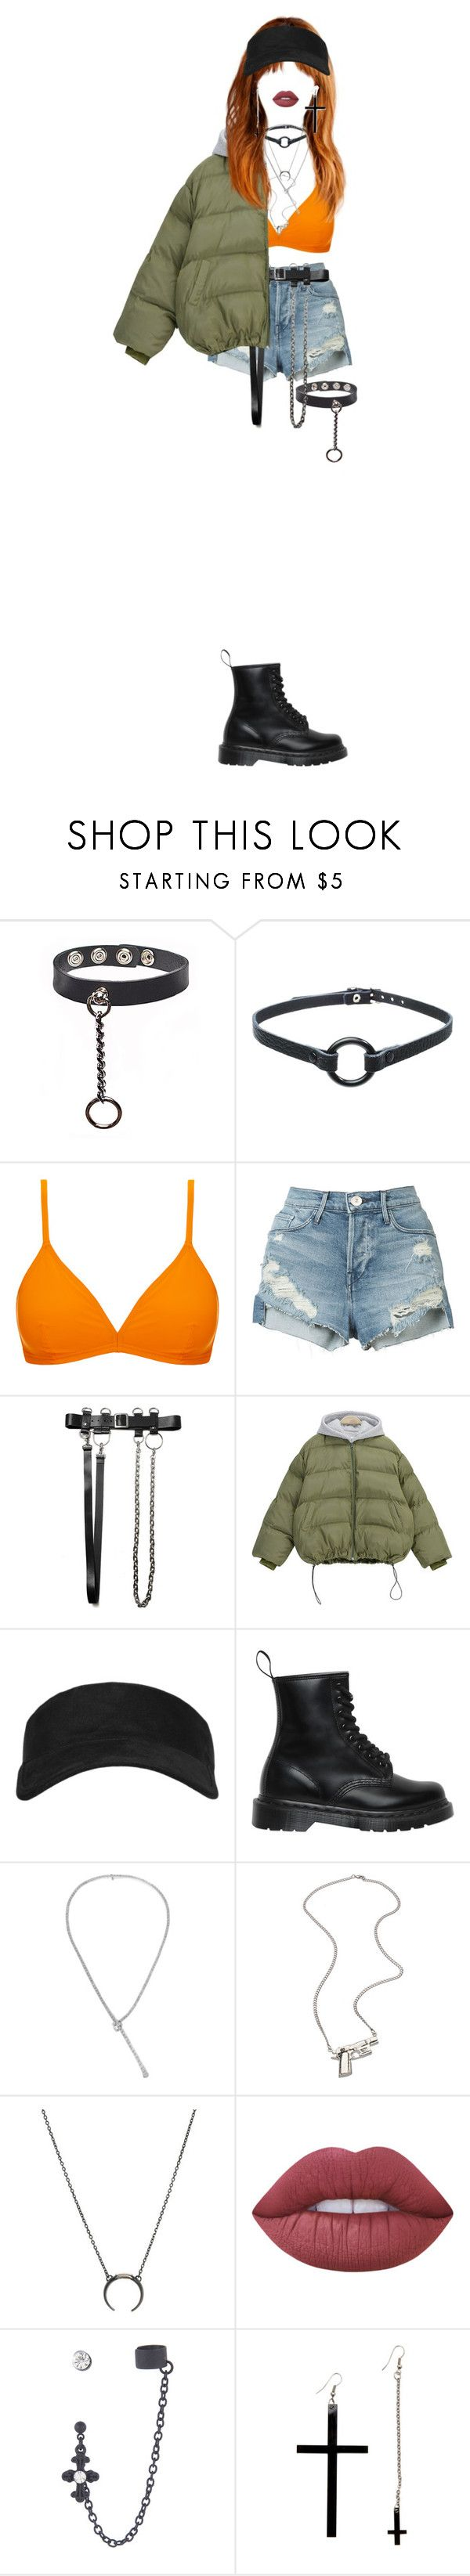 """""""Mikki _ Old School"""" by xxeucliffexx ❤ liked on Polyvore featuring Orlebar Brown, 3x1, Chicnova Fashion, Topshop, Dr. Martens, Gucci, Erica Anenberg, Lime Crime, Hot Topic and libra"""